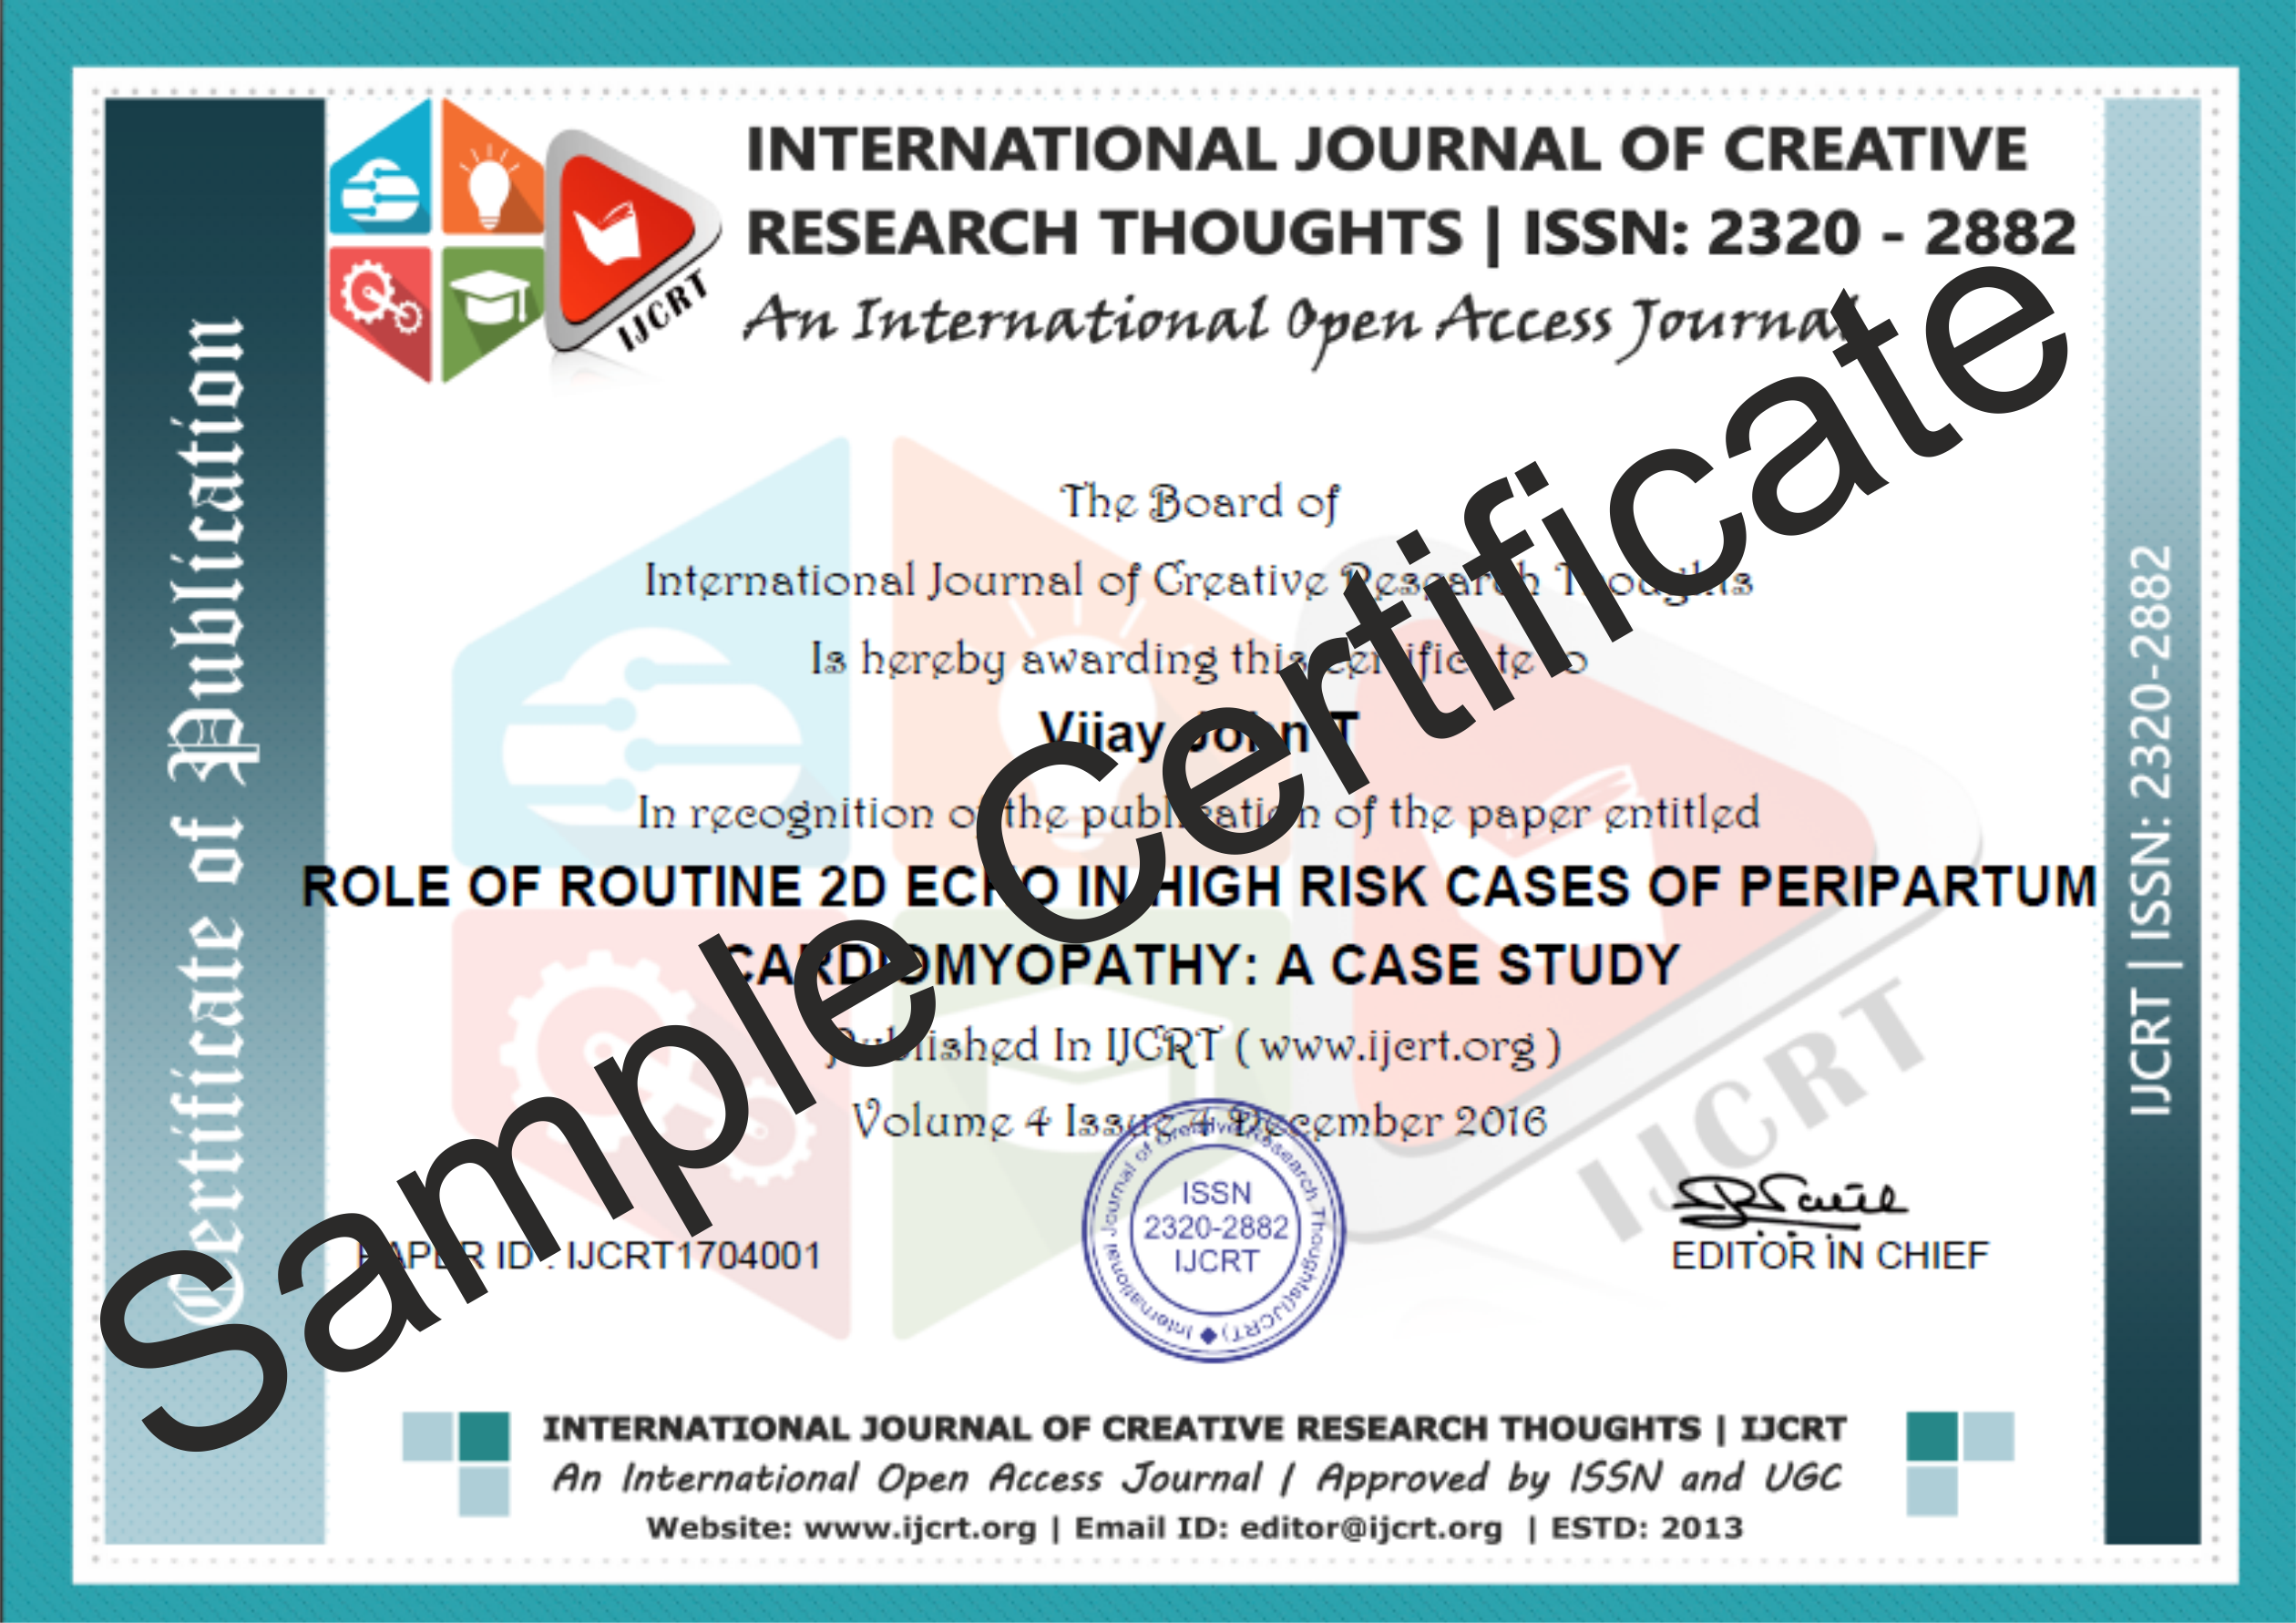 006 How To Publish Research Paper In International Journal Free Pdf Sample Certificate Unusual Full